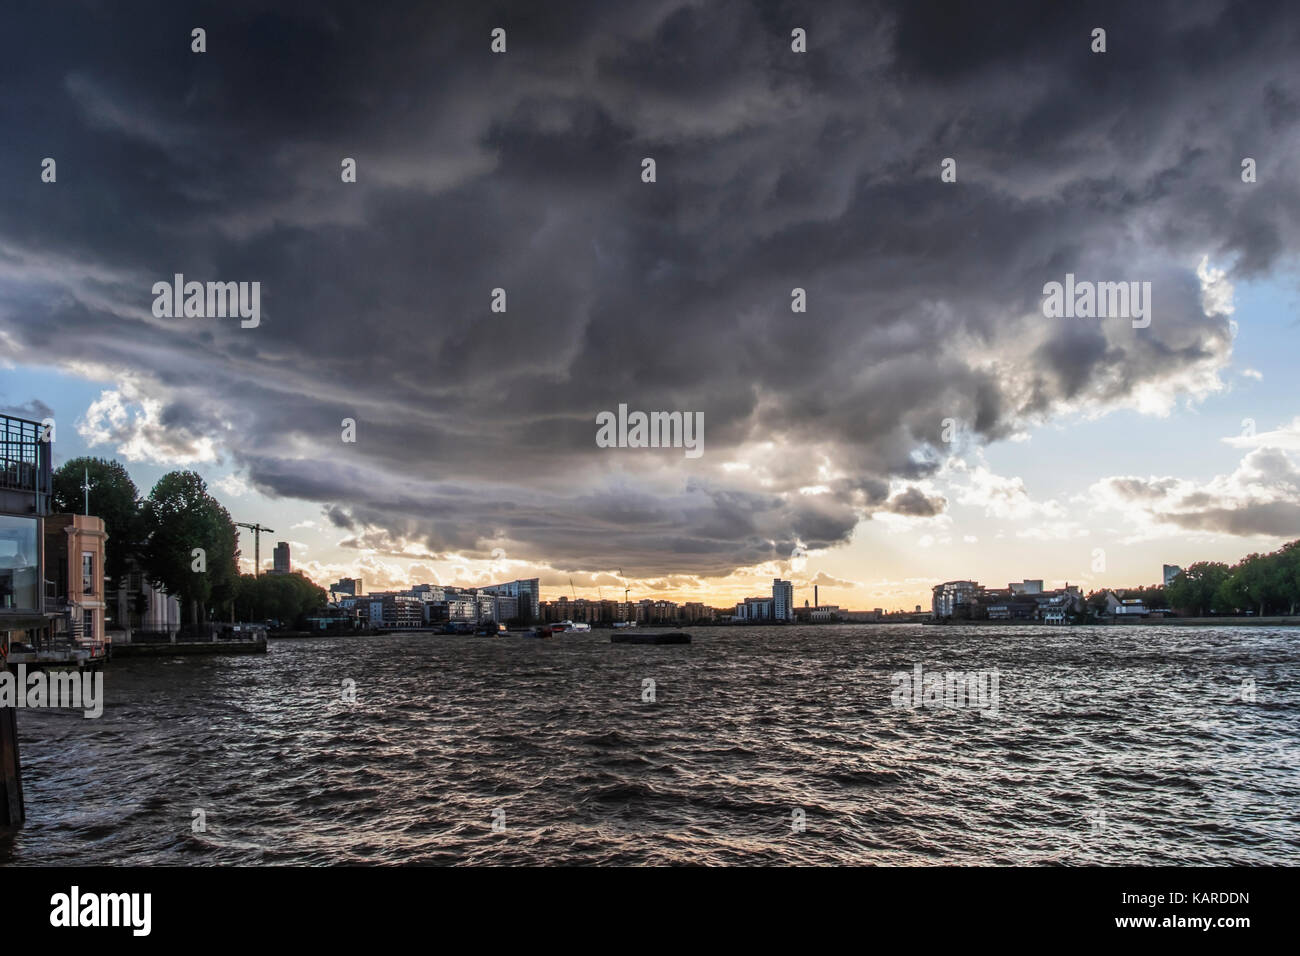 Greenwich, London. Thames river view with choppy water,stormy black sky, black storm clouds.approaching sorm,bad - Stock Image